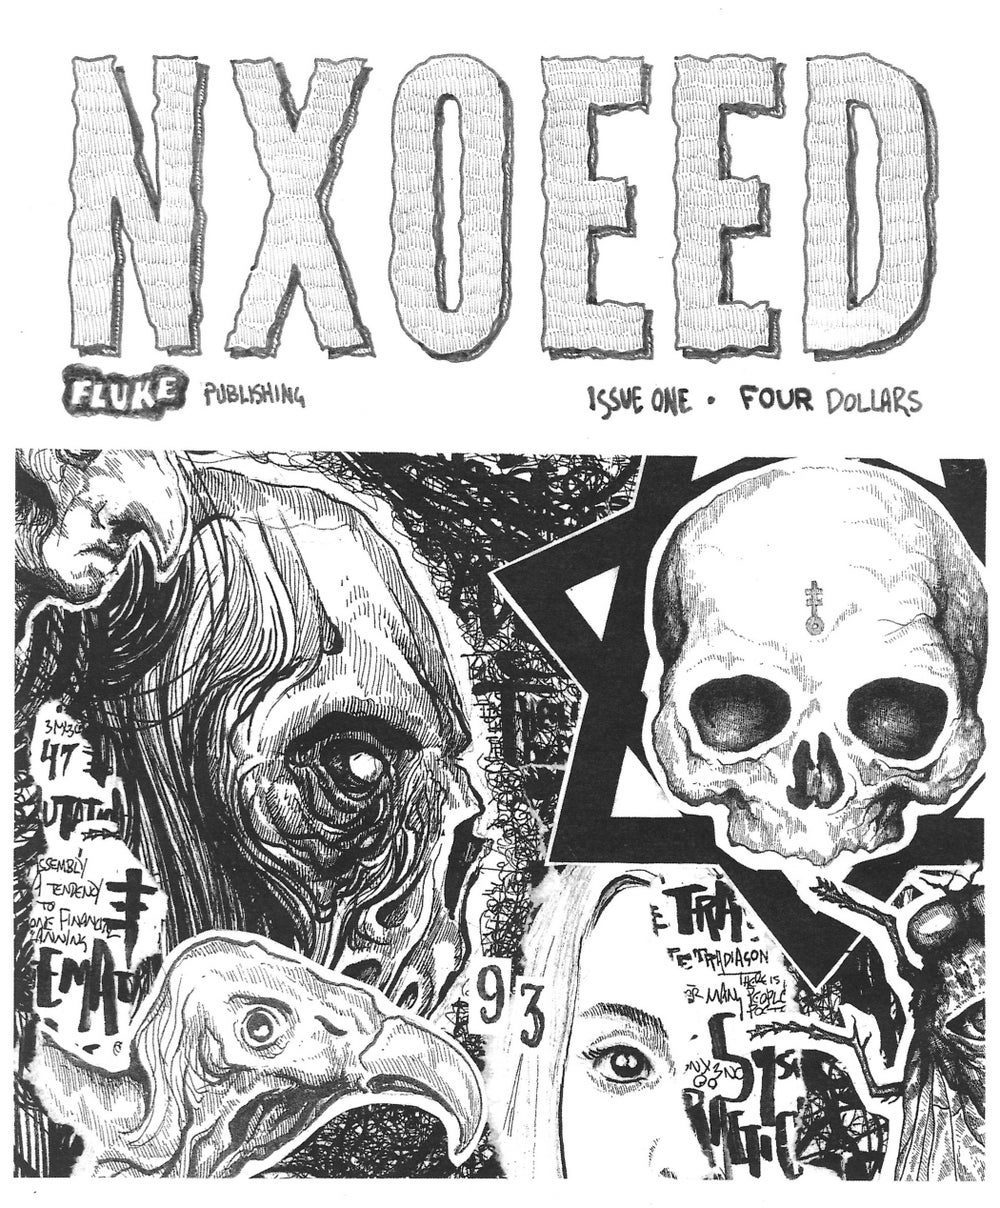 Image of NXOEED issue 1 | Spring 2020 (Fluke Publishing)